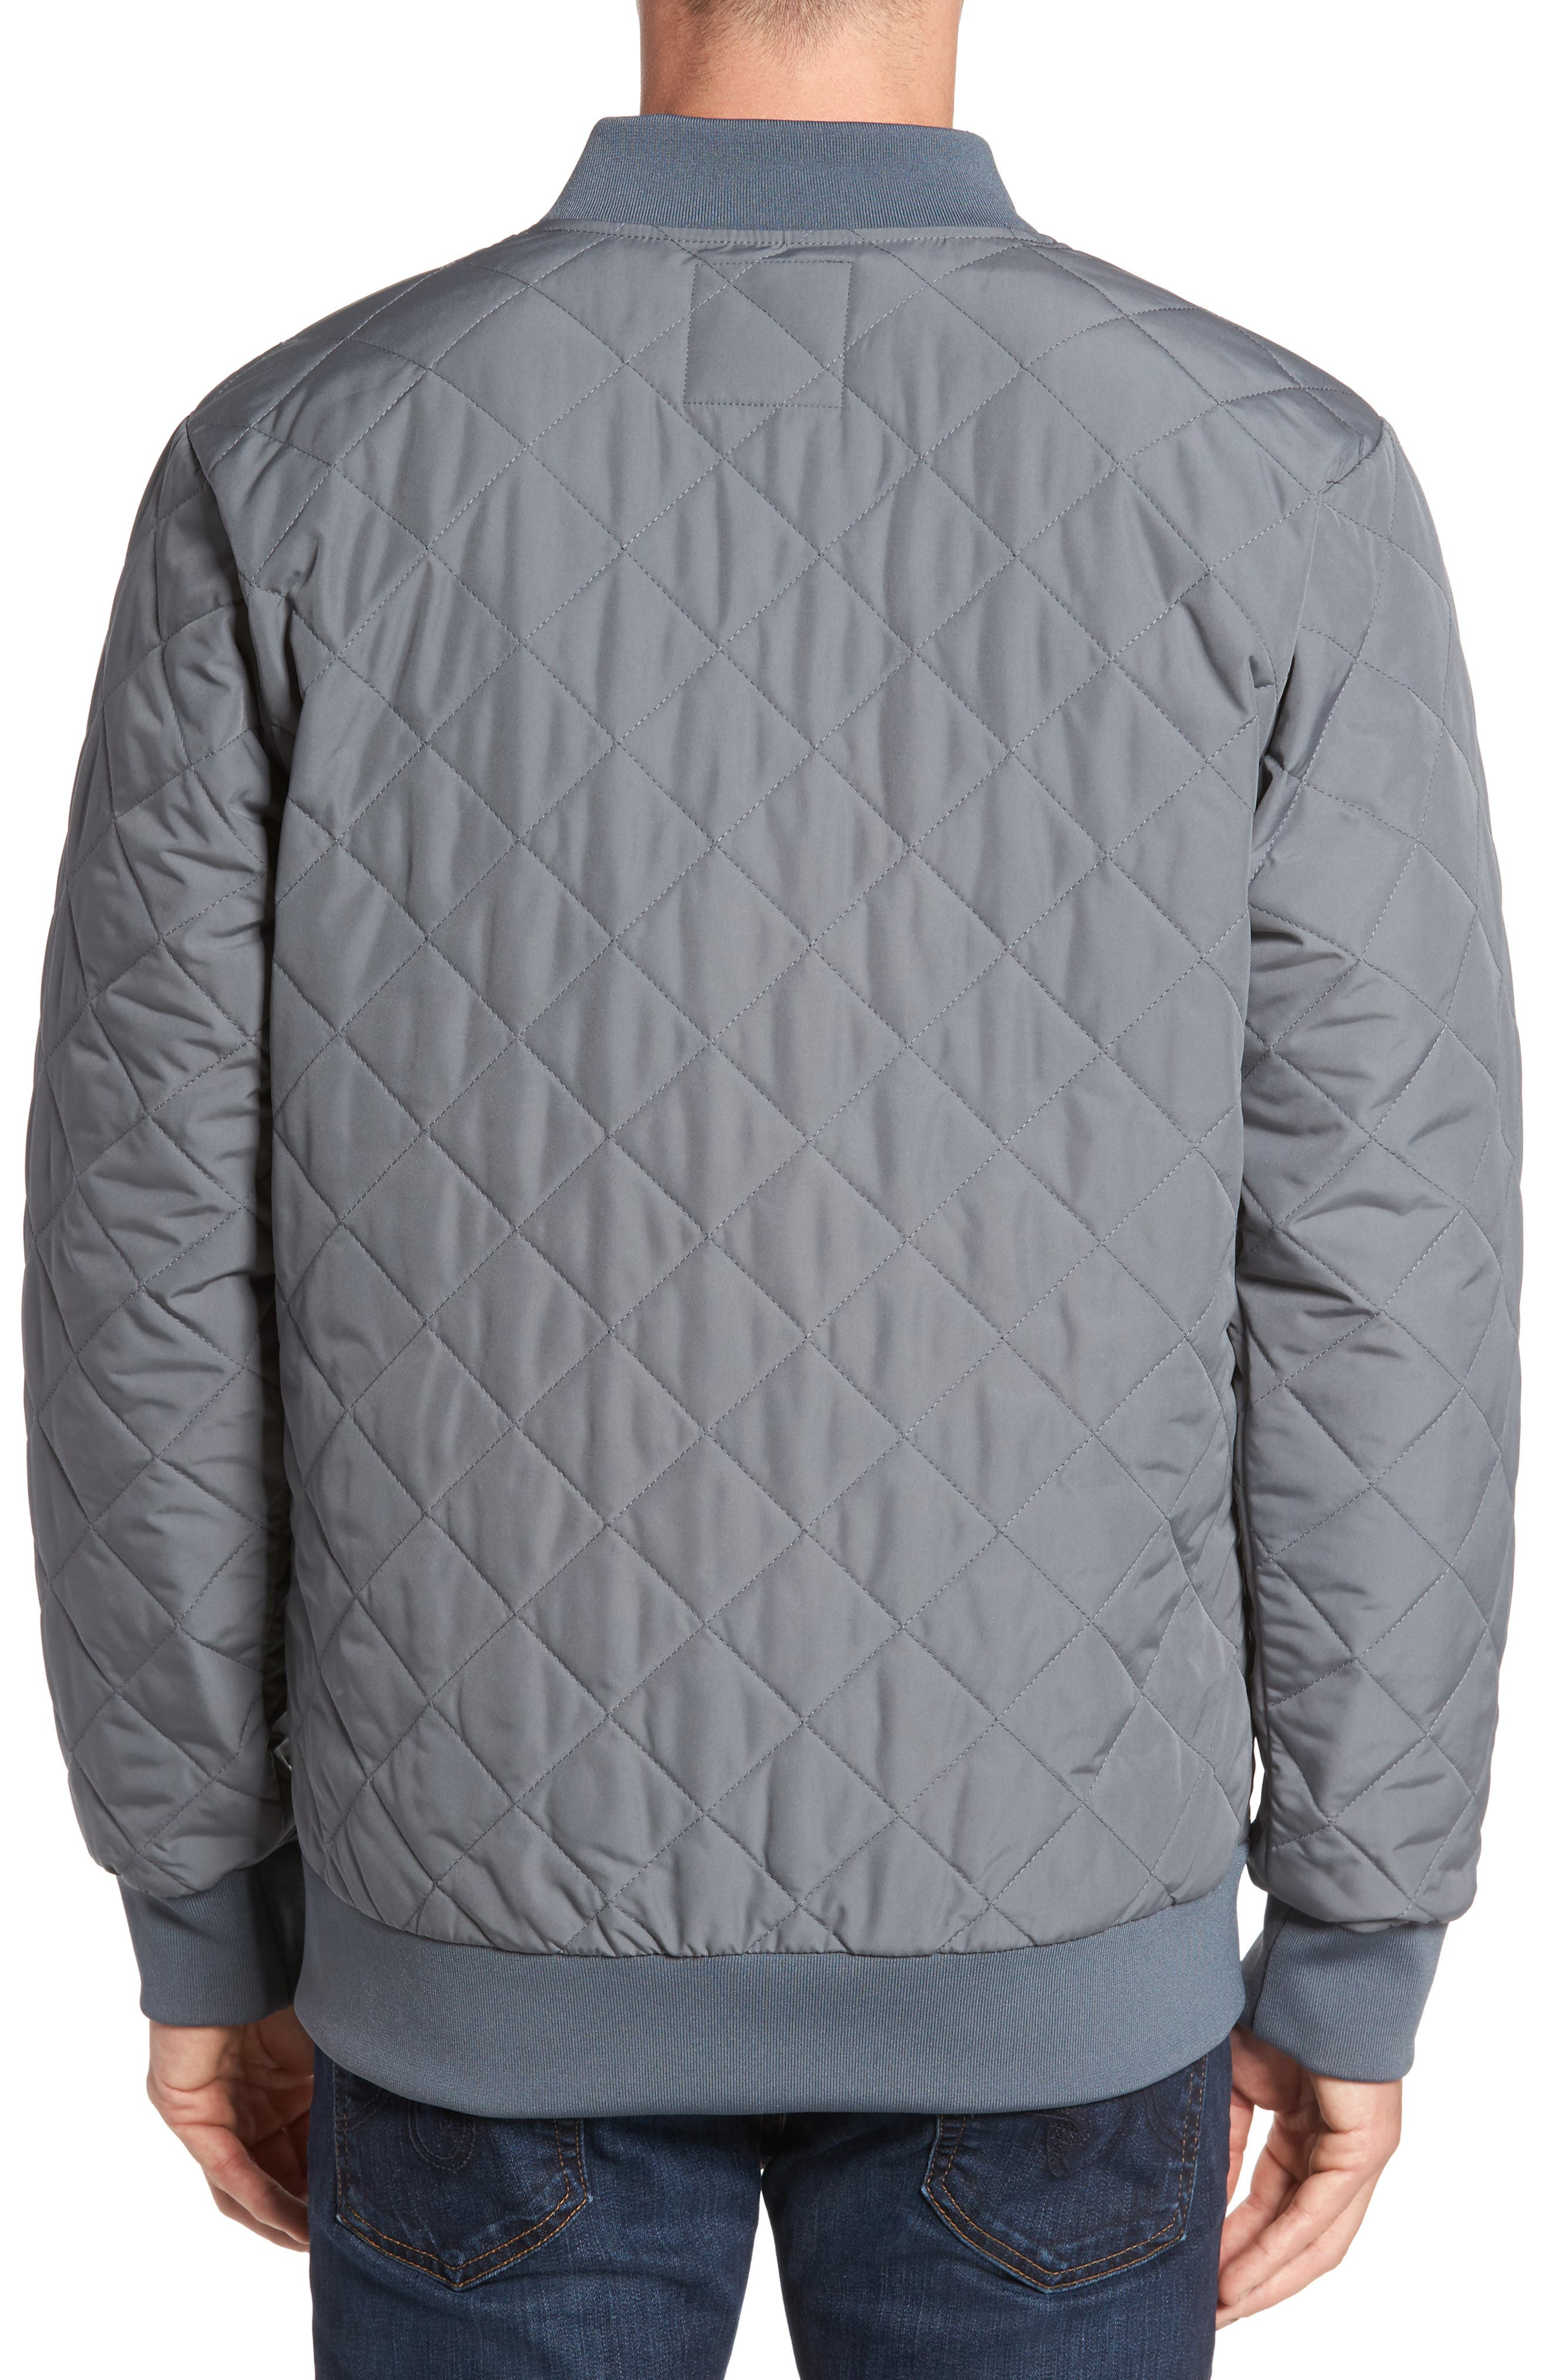 Distributor Quilted Bomber Jacket,                             Alternate thumbnail 2, color,                             Grey